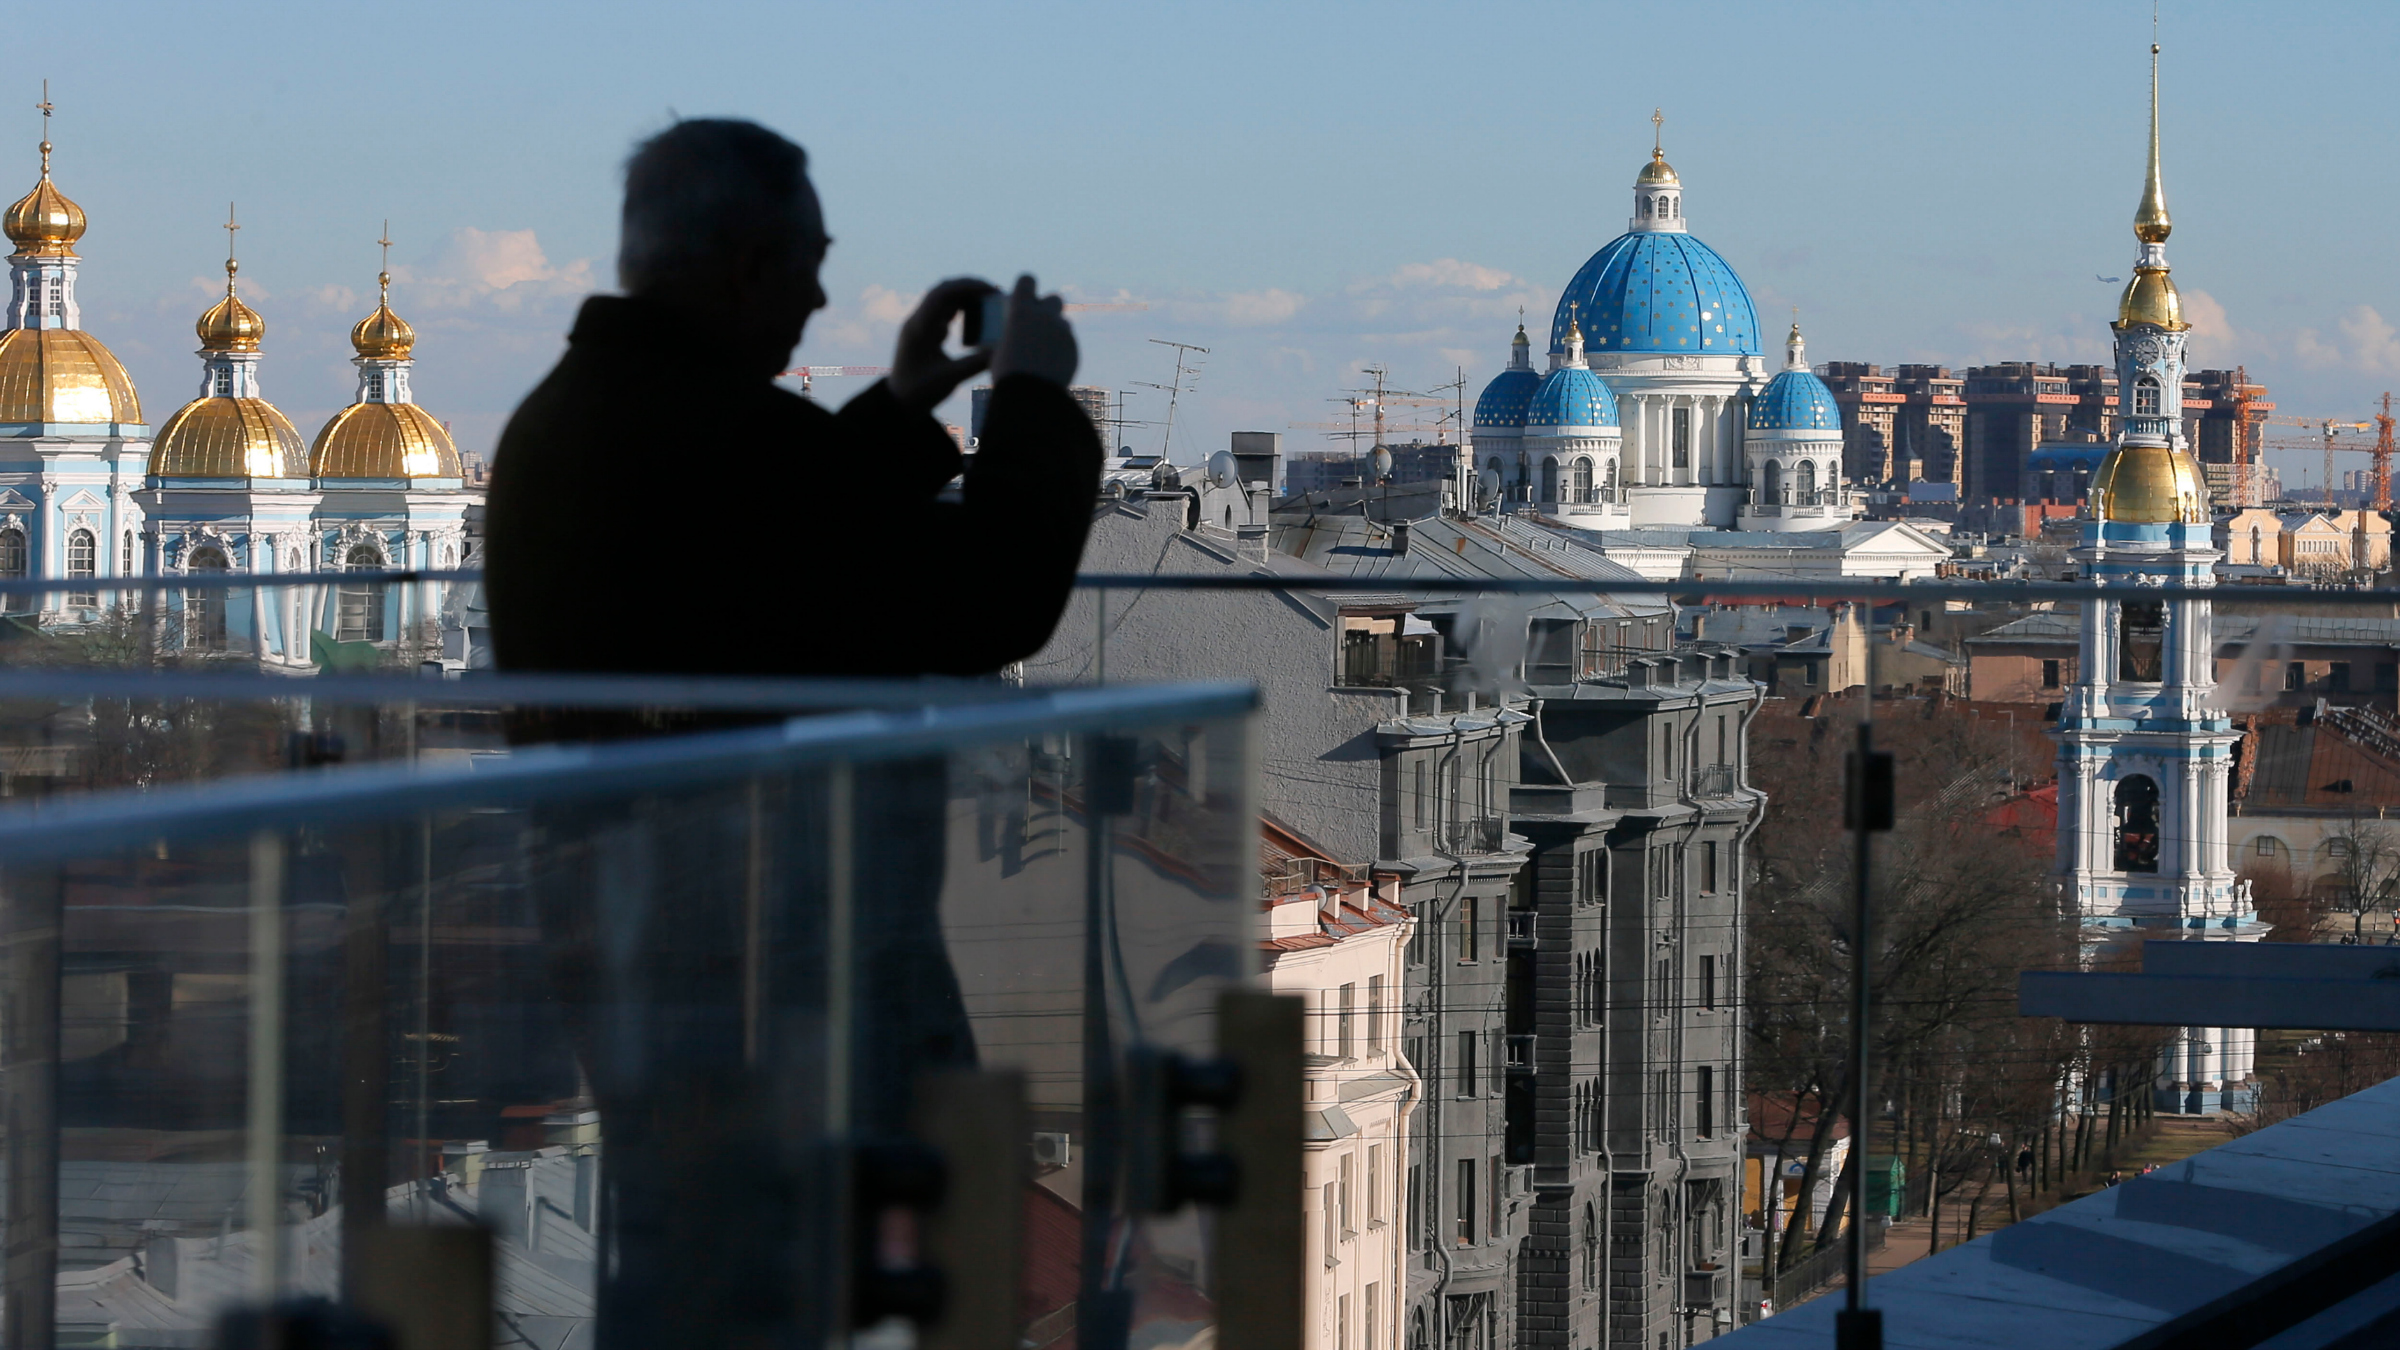 A visitor takes photos from the terrace of the new Mariinsky Theatre in St. Petersburg, Russia.